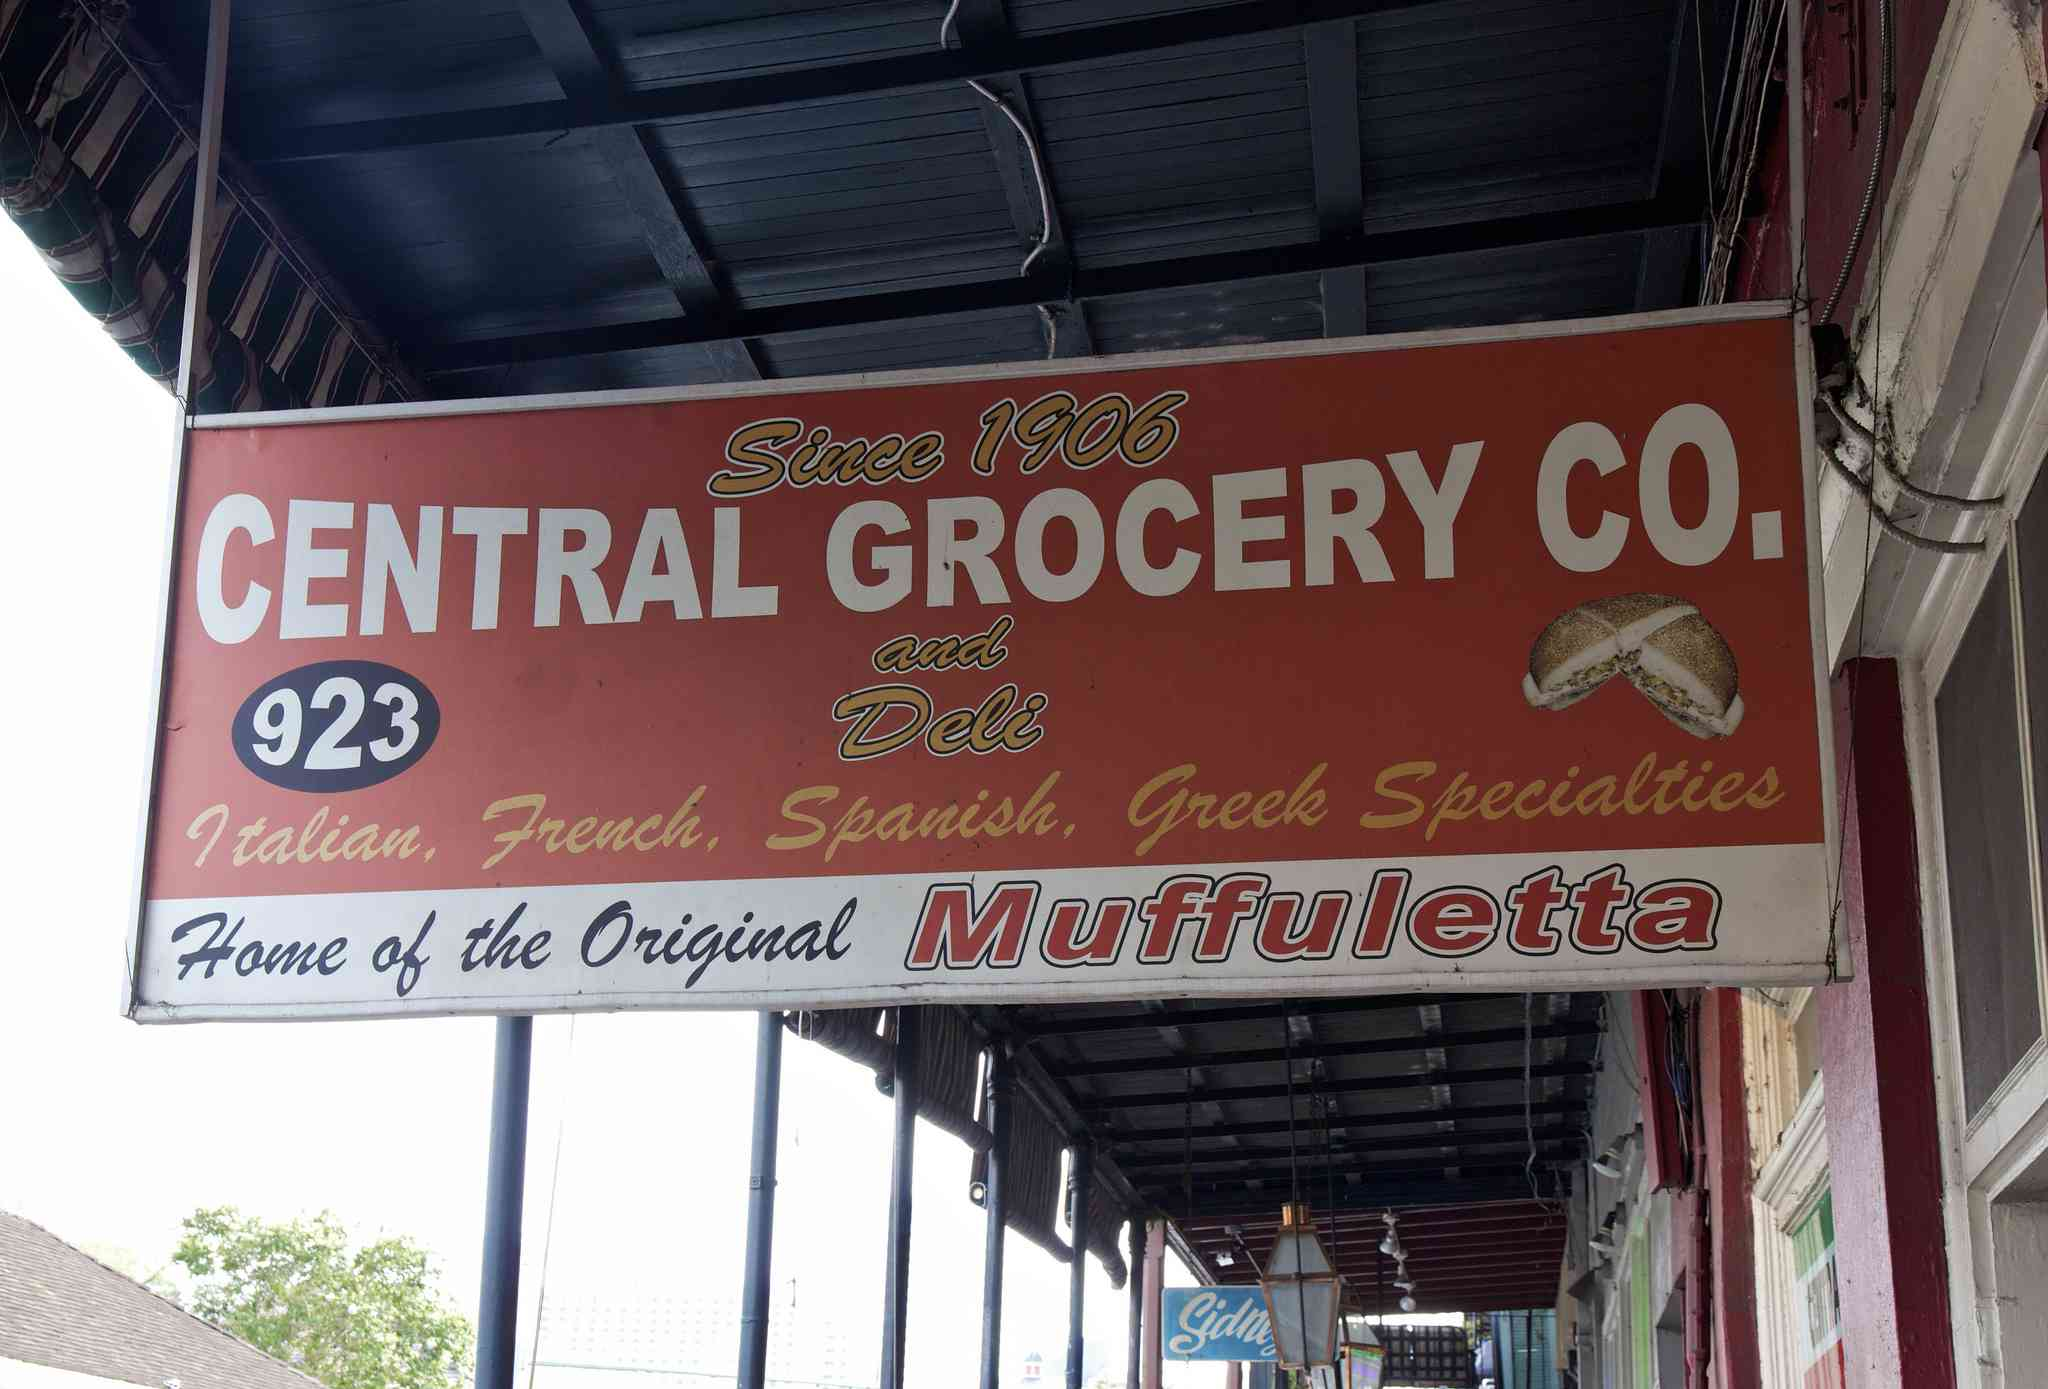 Central Grocery in New Orleans is Home of the Original Muffuletta